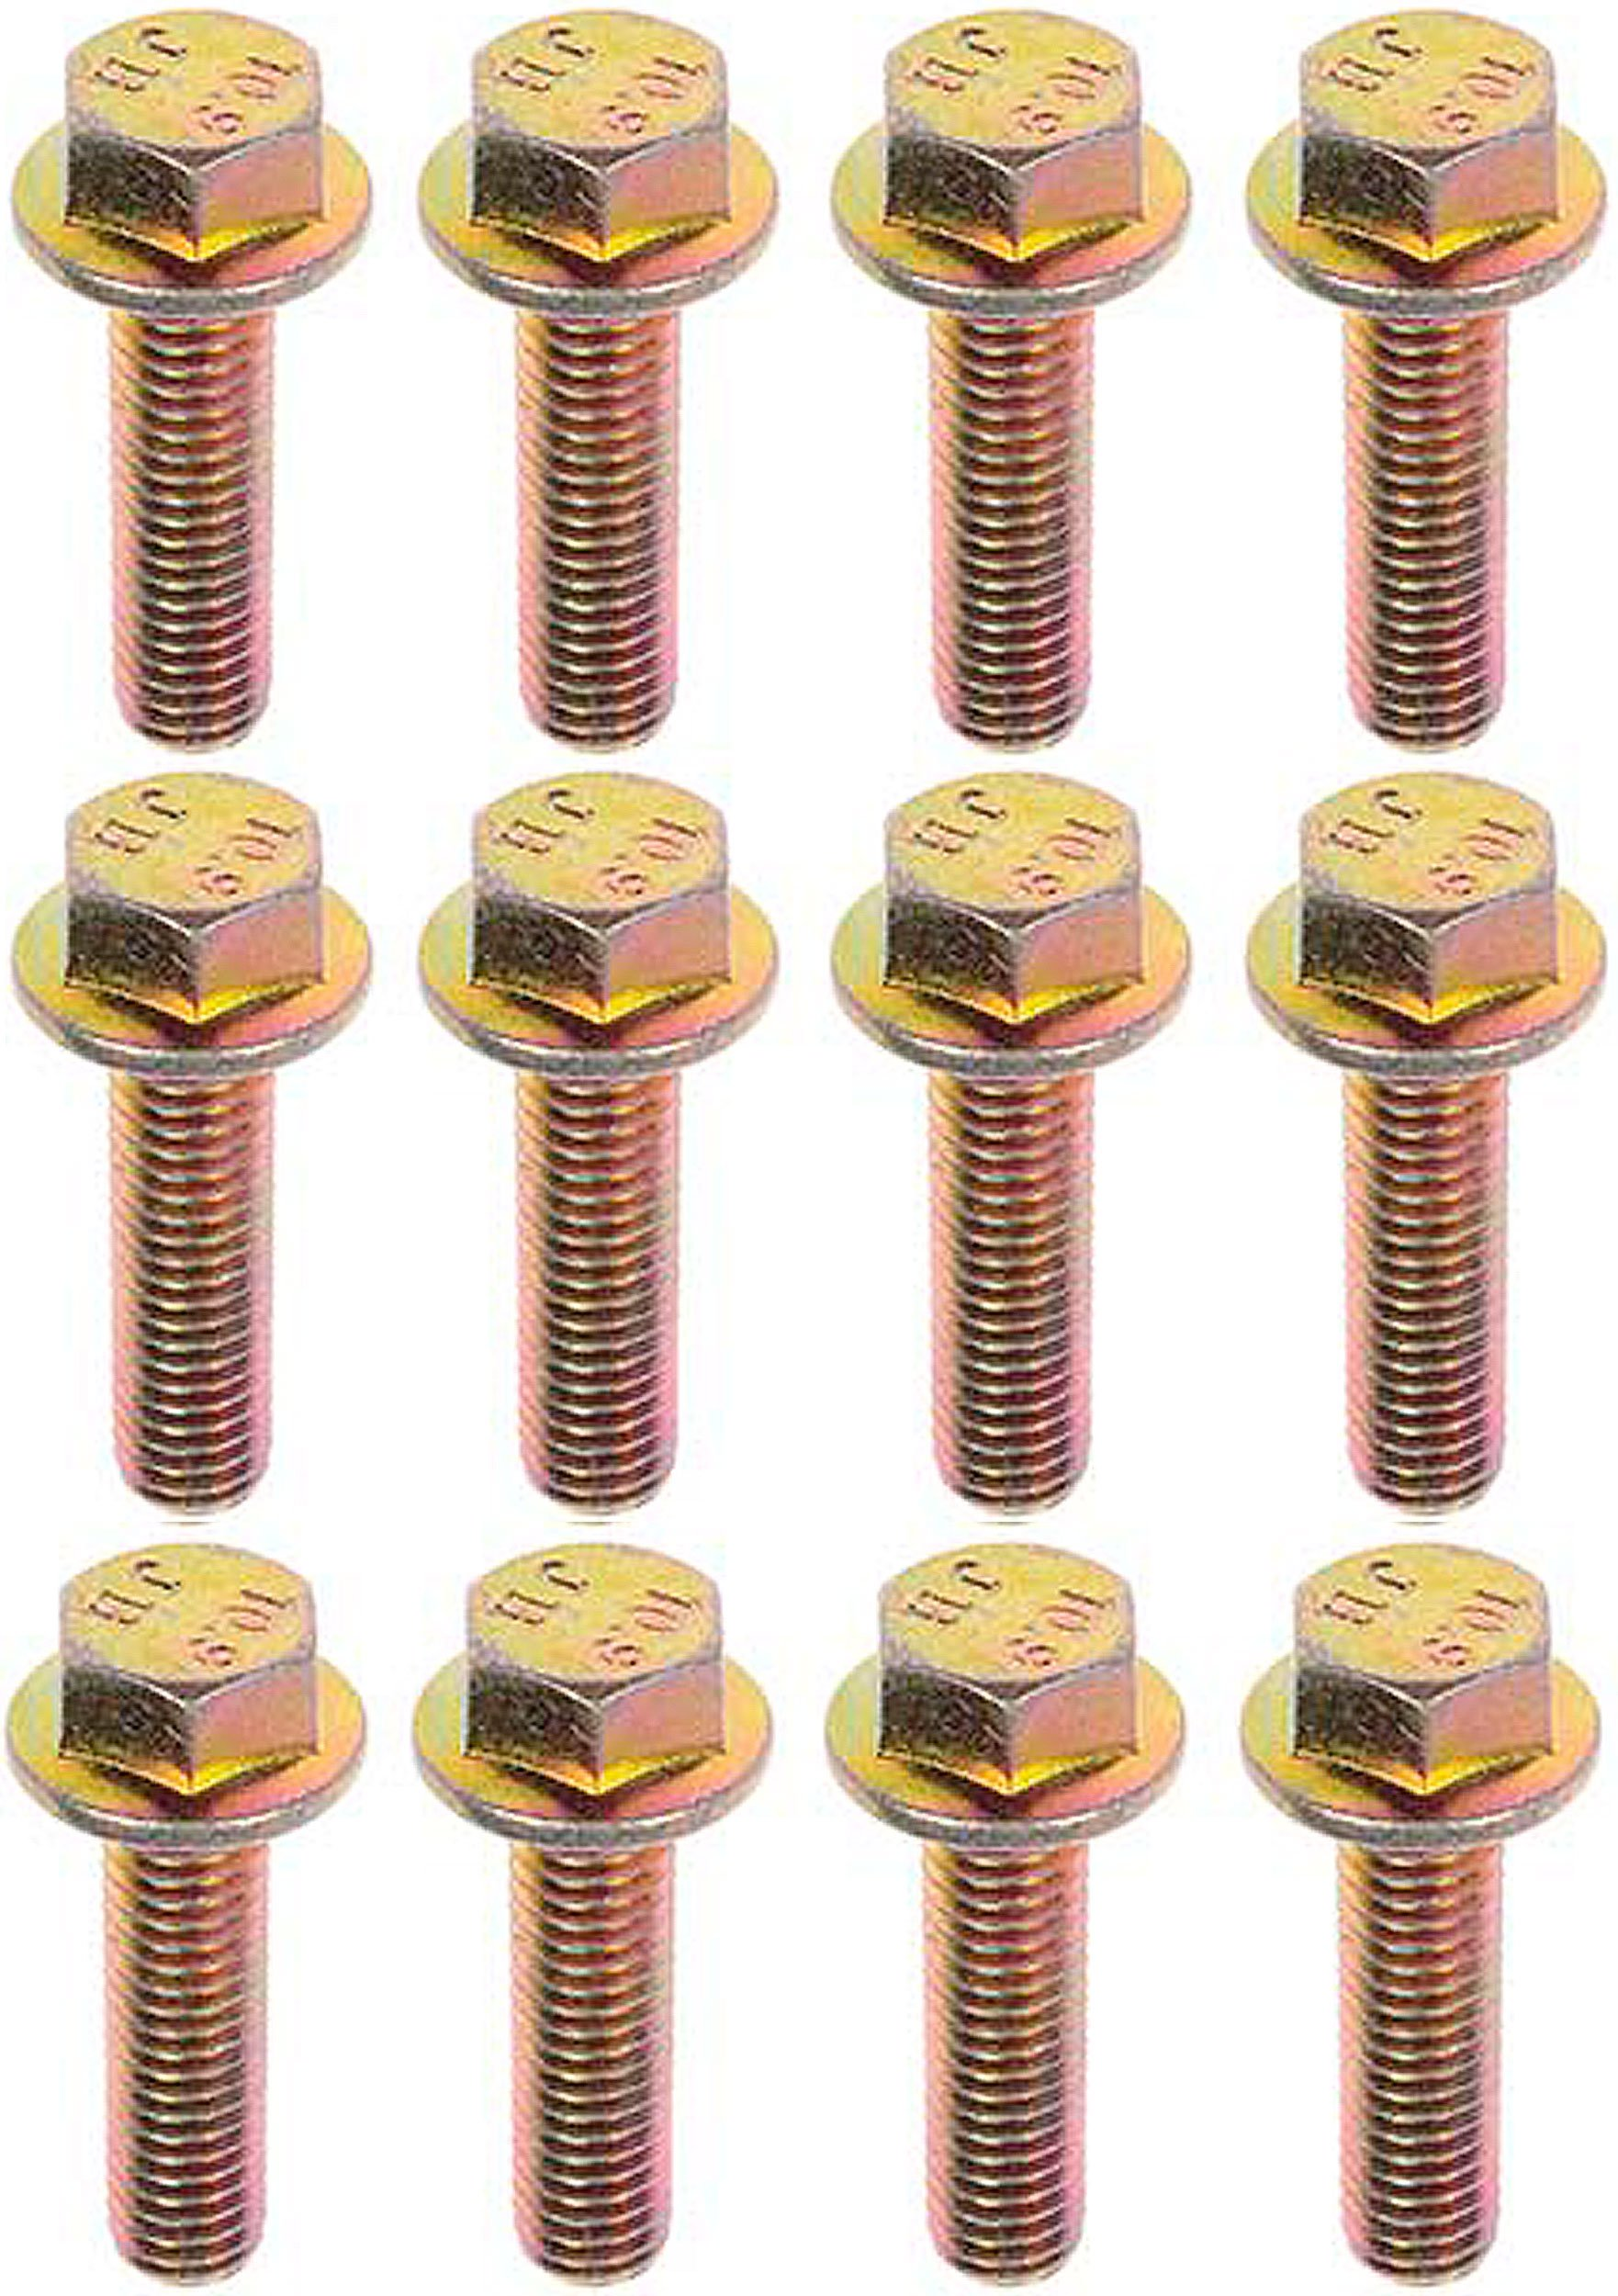 APDTY 103944 Exhaust Manifold Anti-Corrosion Flanged Bolt (Set of 12; M8-1.25; Grade 10.9) (Direct Fit For The Models Listed In Compatibility Chart)